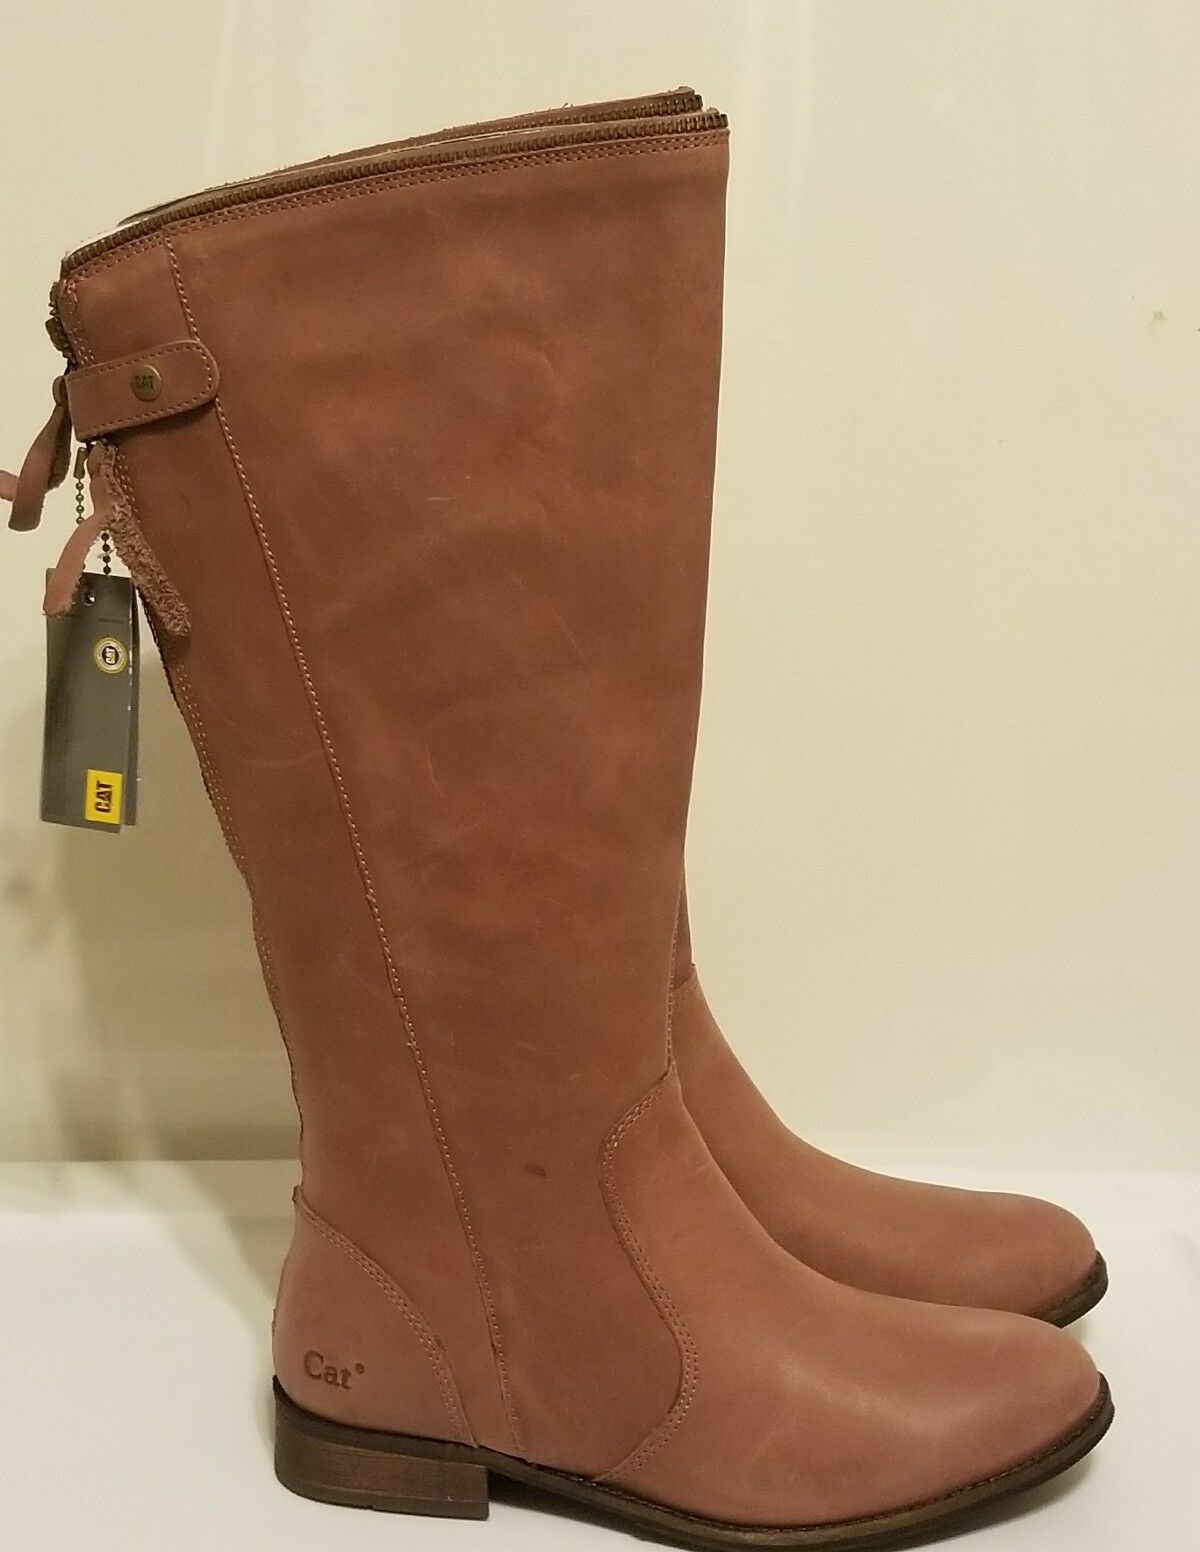 Cat By Caterpillar Layla Cordo Womens Leather Riding Boots 7M, Brand New w/Box